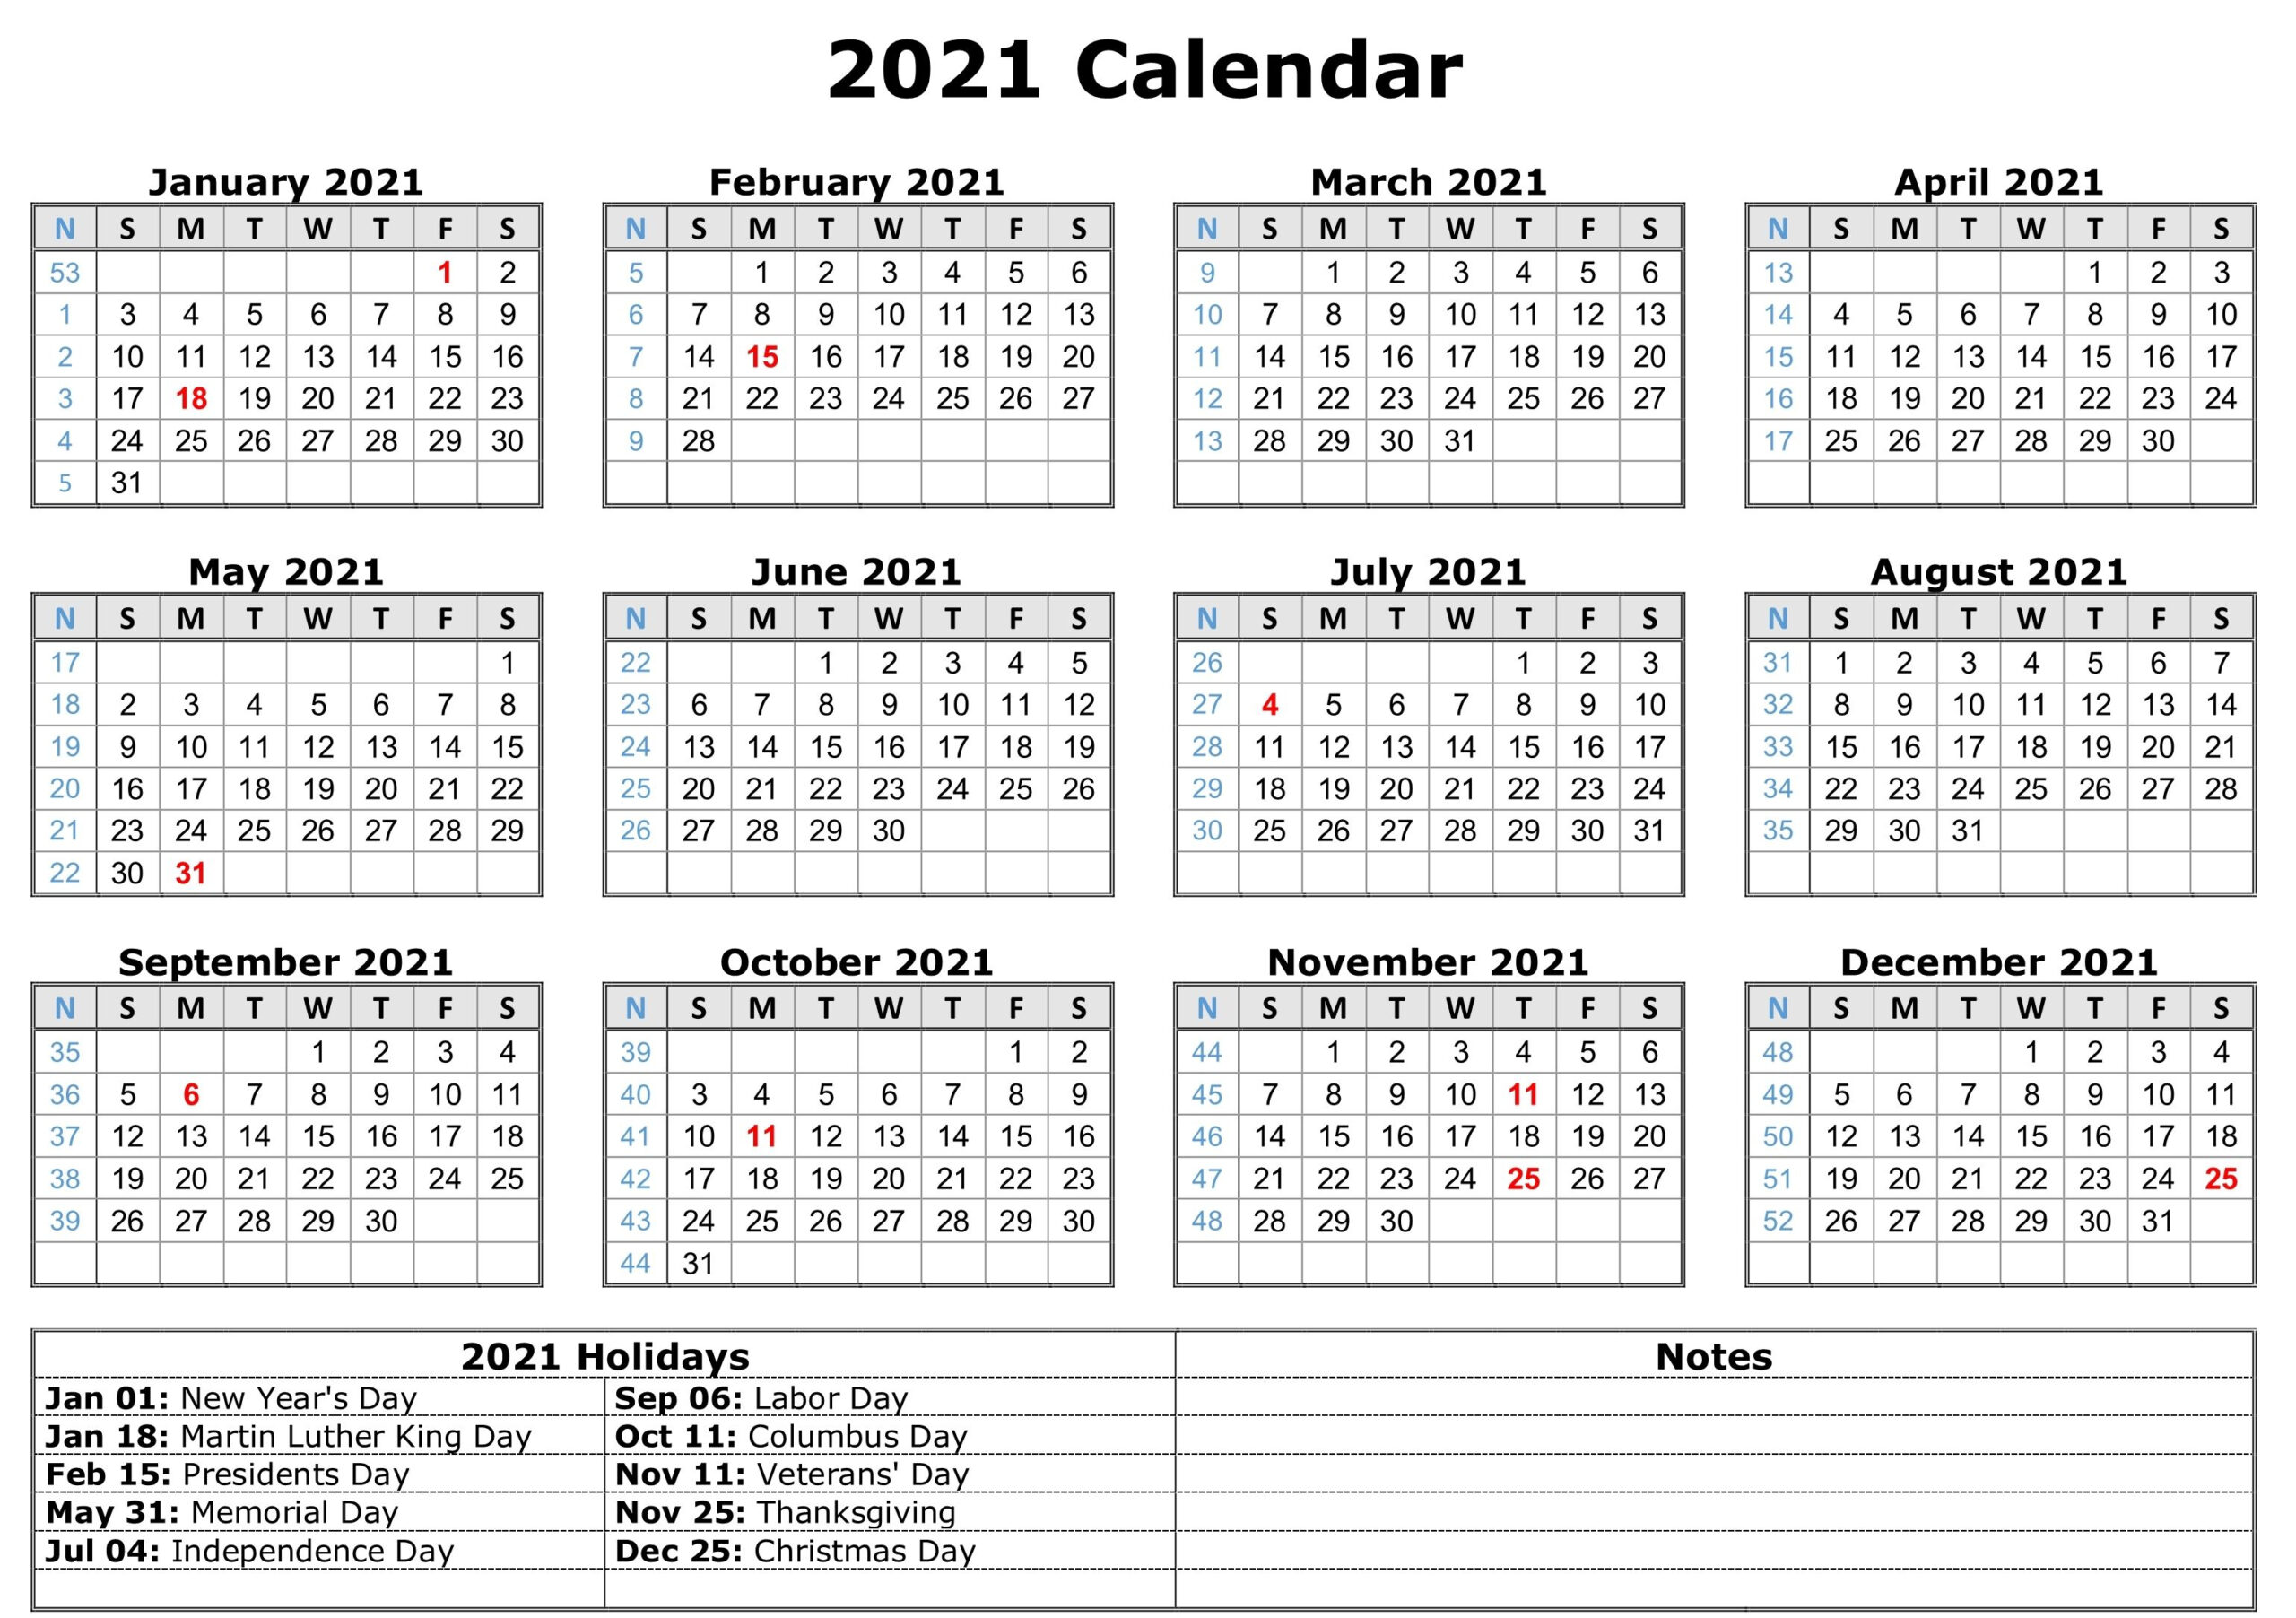 2021 Calendar Printable With Federal Holidays